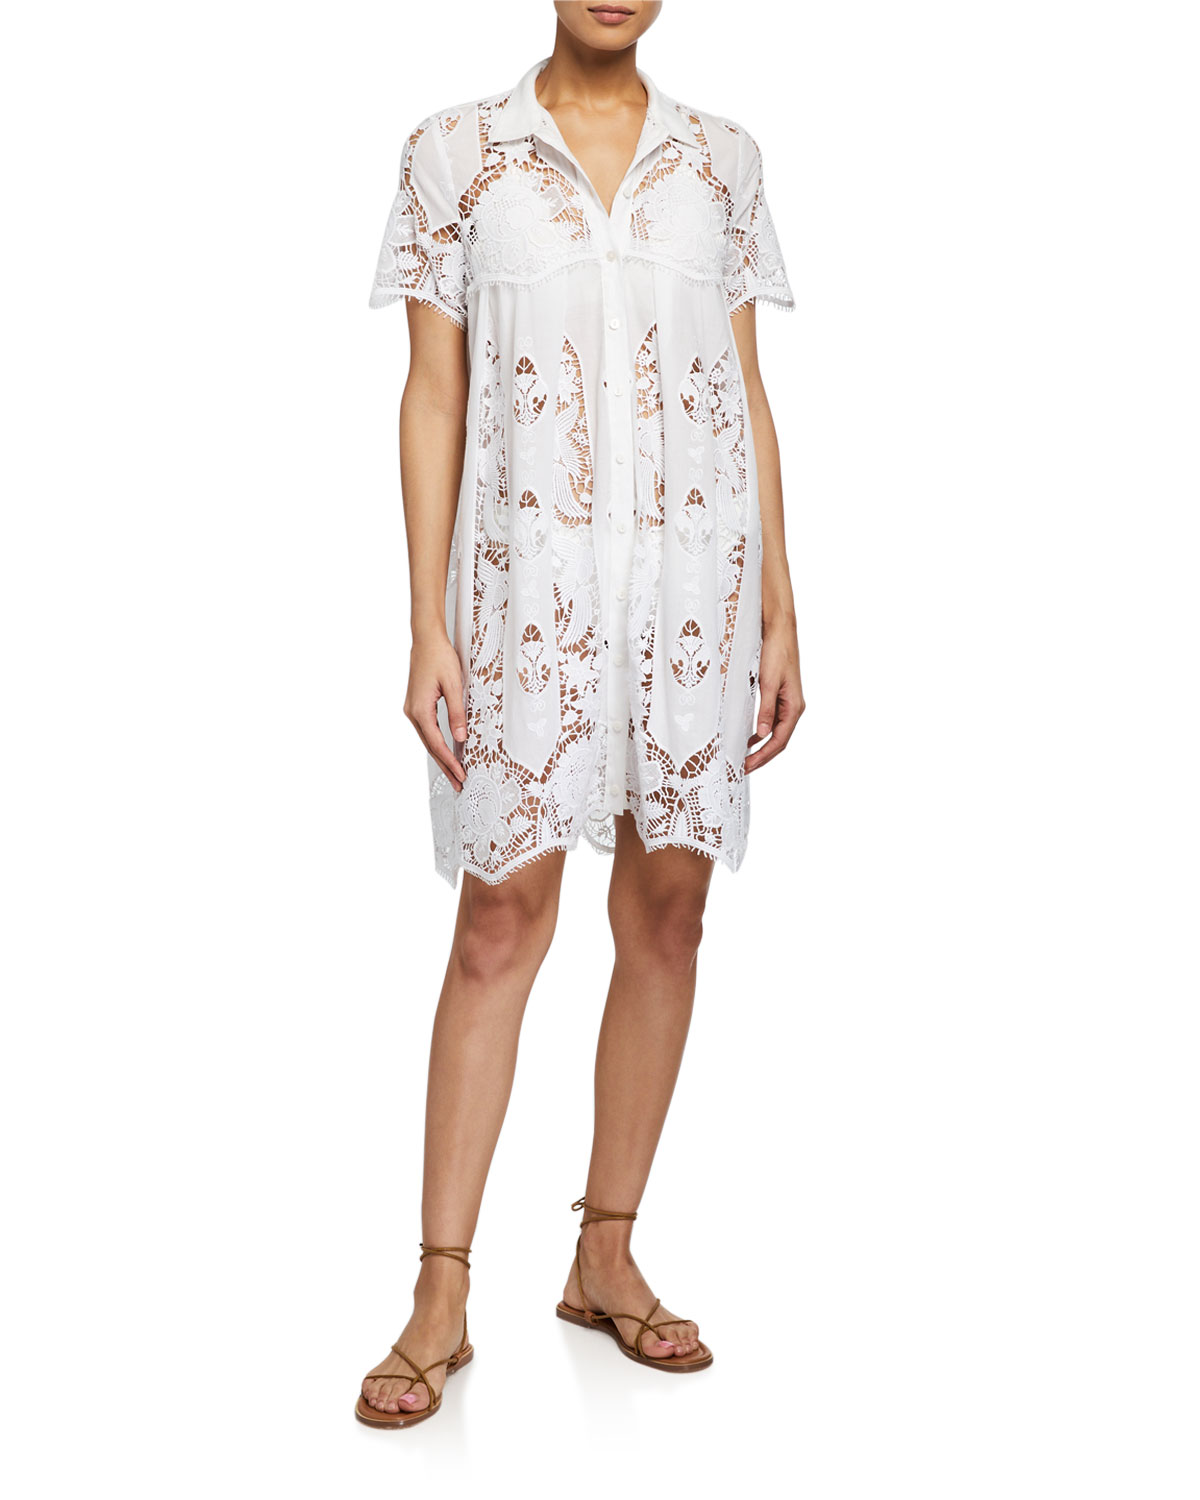 Miguelina ALANNA COVERUP DRESS W/ GRANADILLA COTTON EMBROIDERY